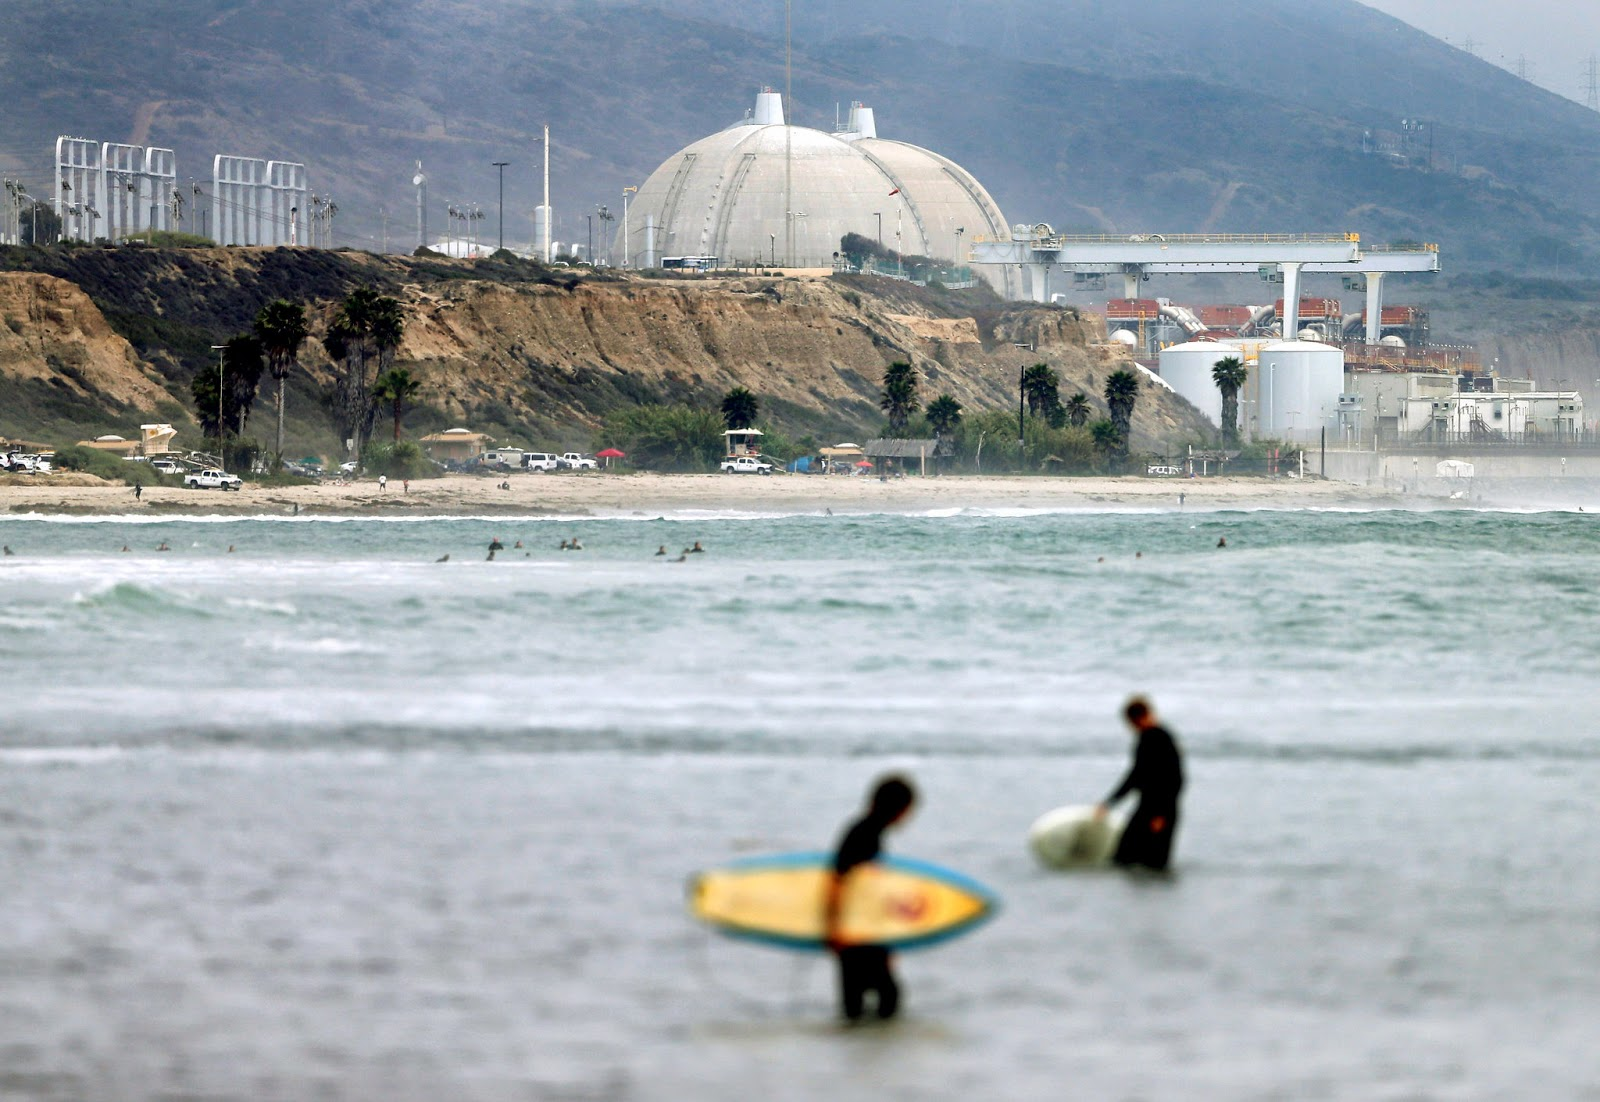 The troubled San Onofre nuclear plant in California is in the initial stages of preparation to be decommissioned after being closed in 2013.  It was one of several reactors across the country that are planned to close. (Credit: Gregory Bull/Associated Press) Click to enlarge.